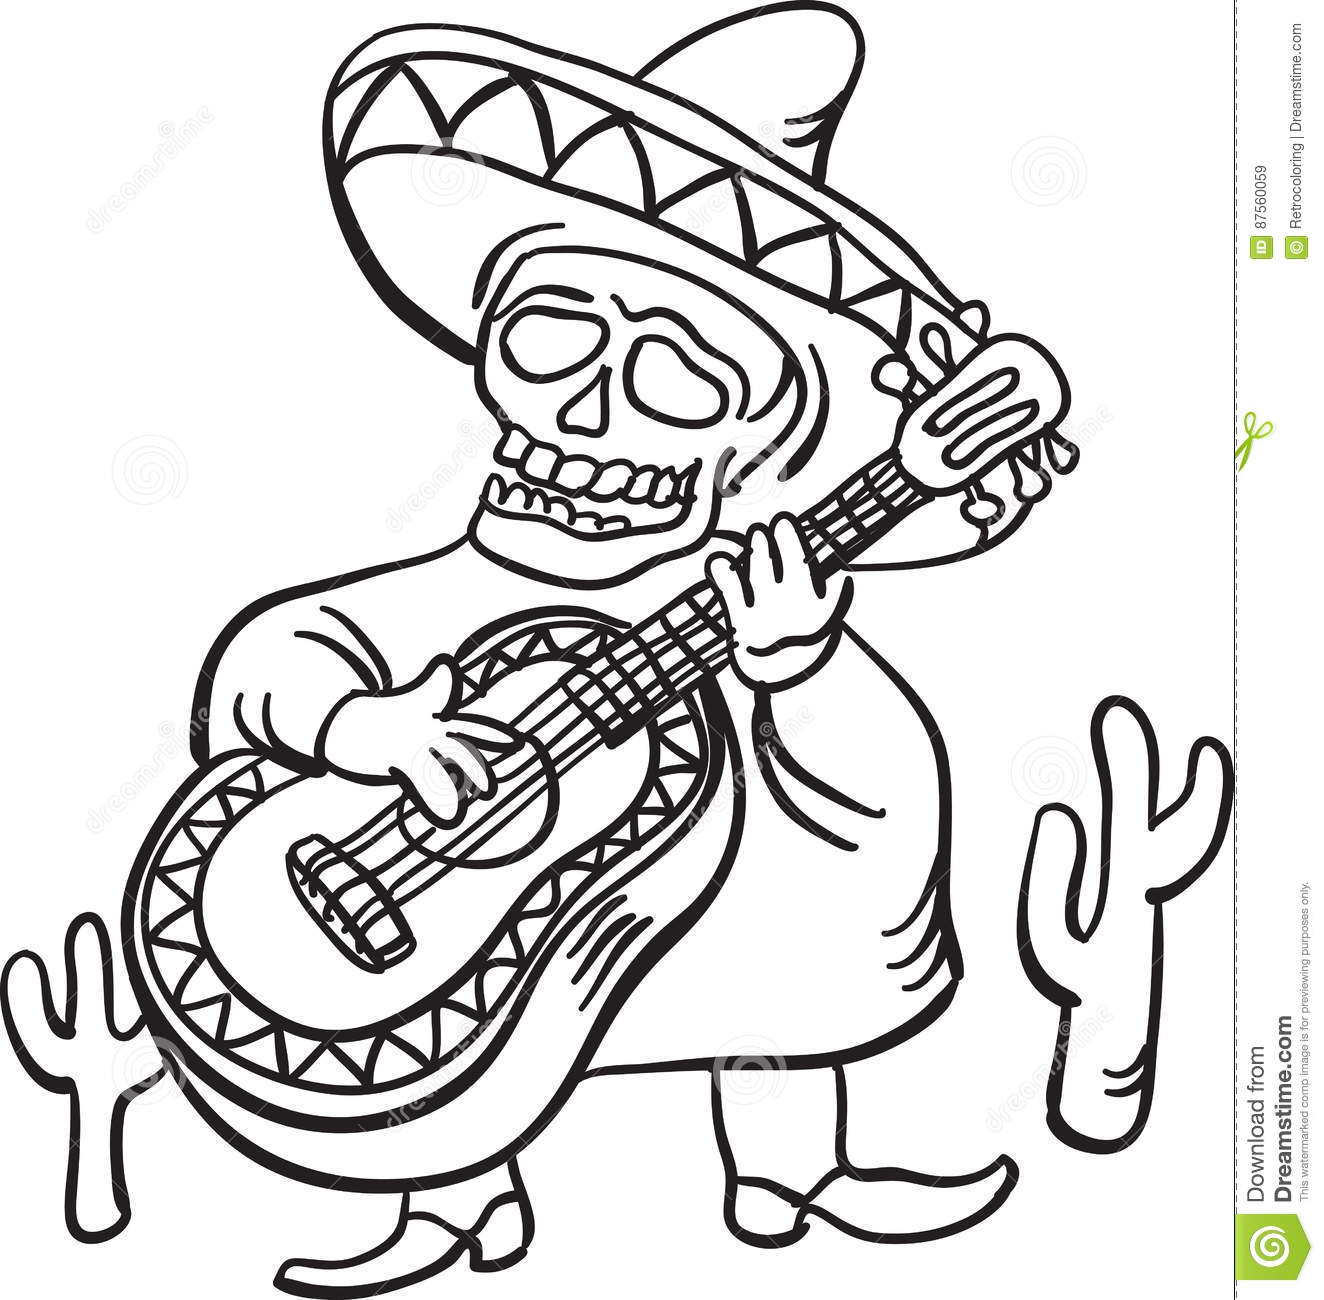 Whiteboard Drawing - Mexican Traditional Character With Guitar Stock ...